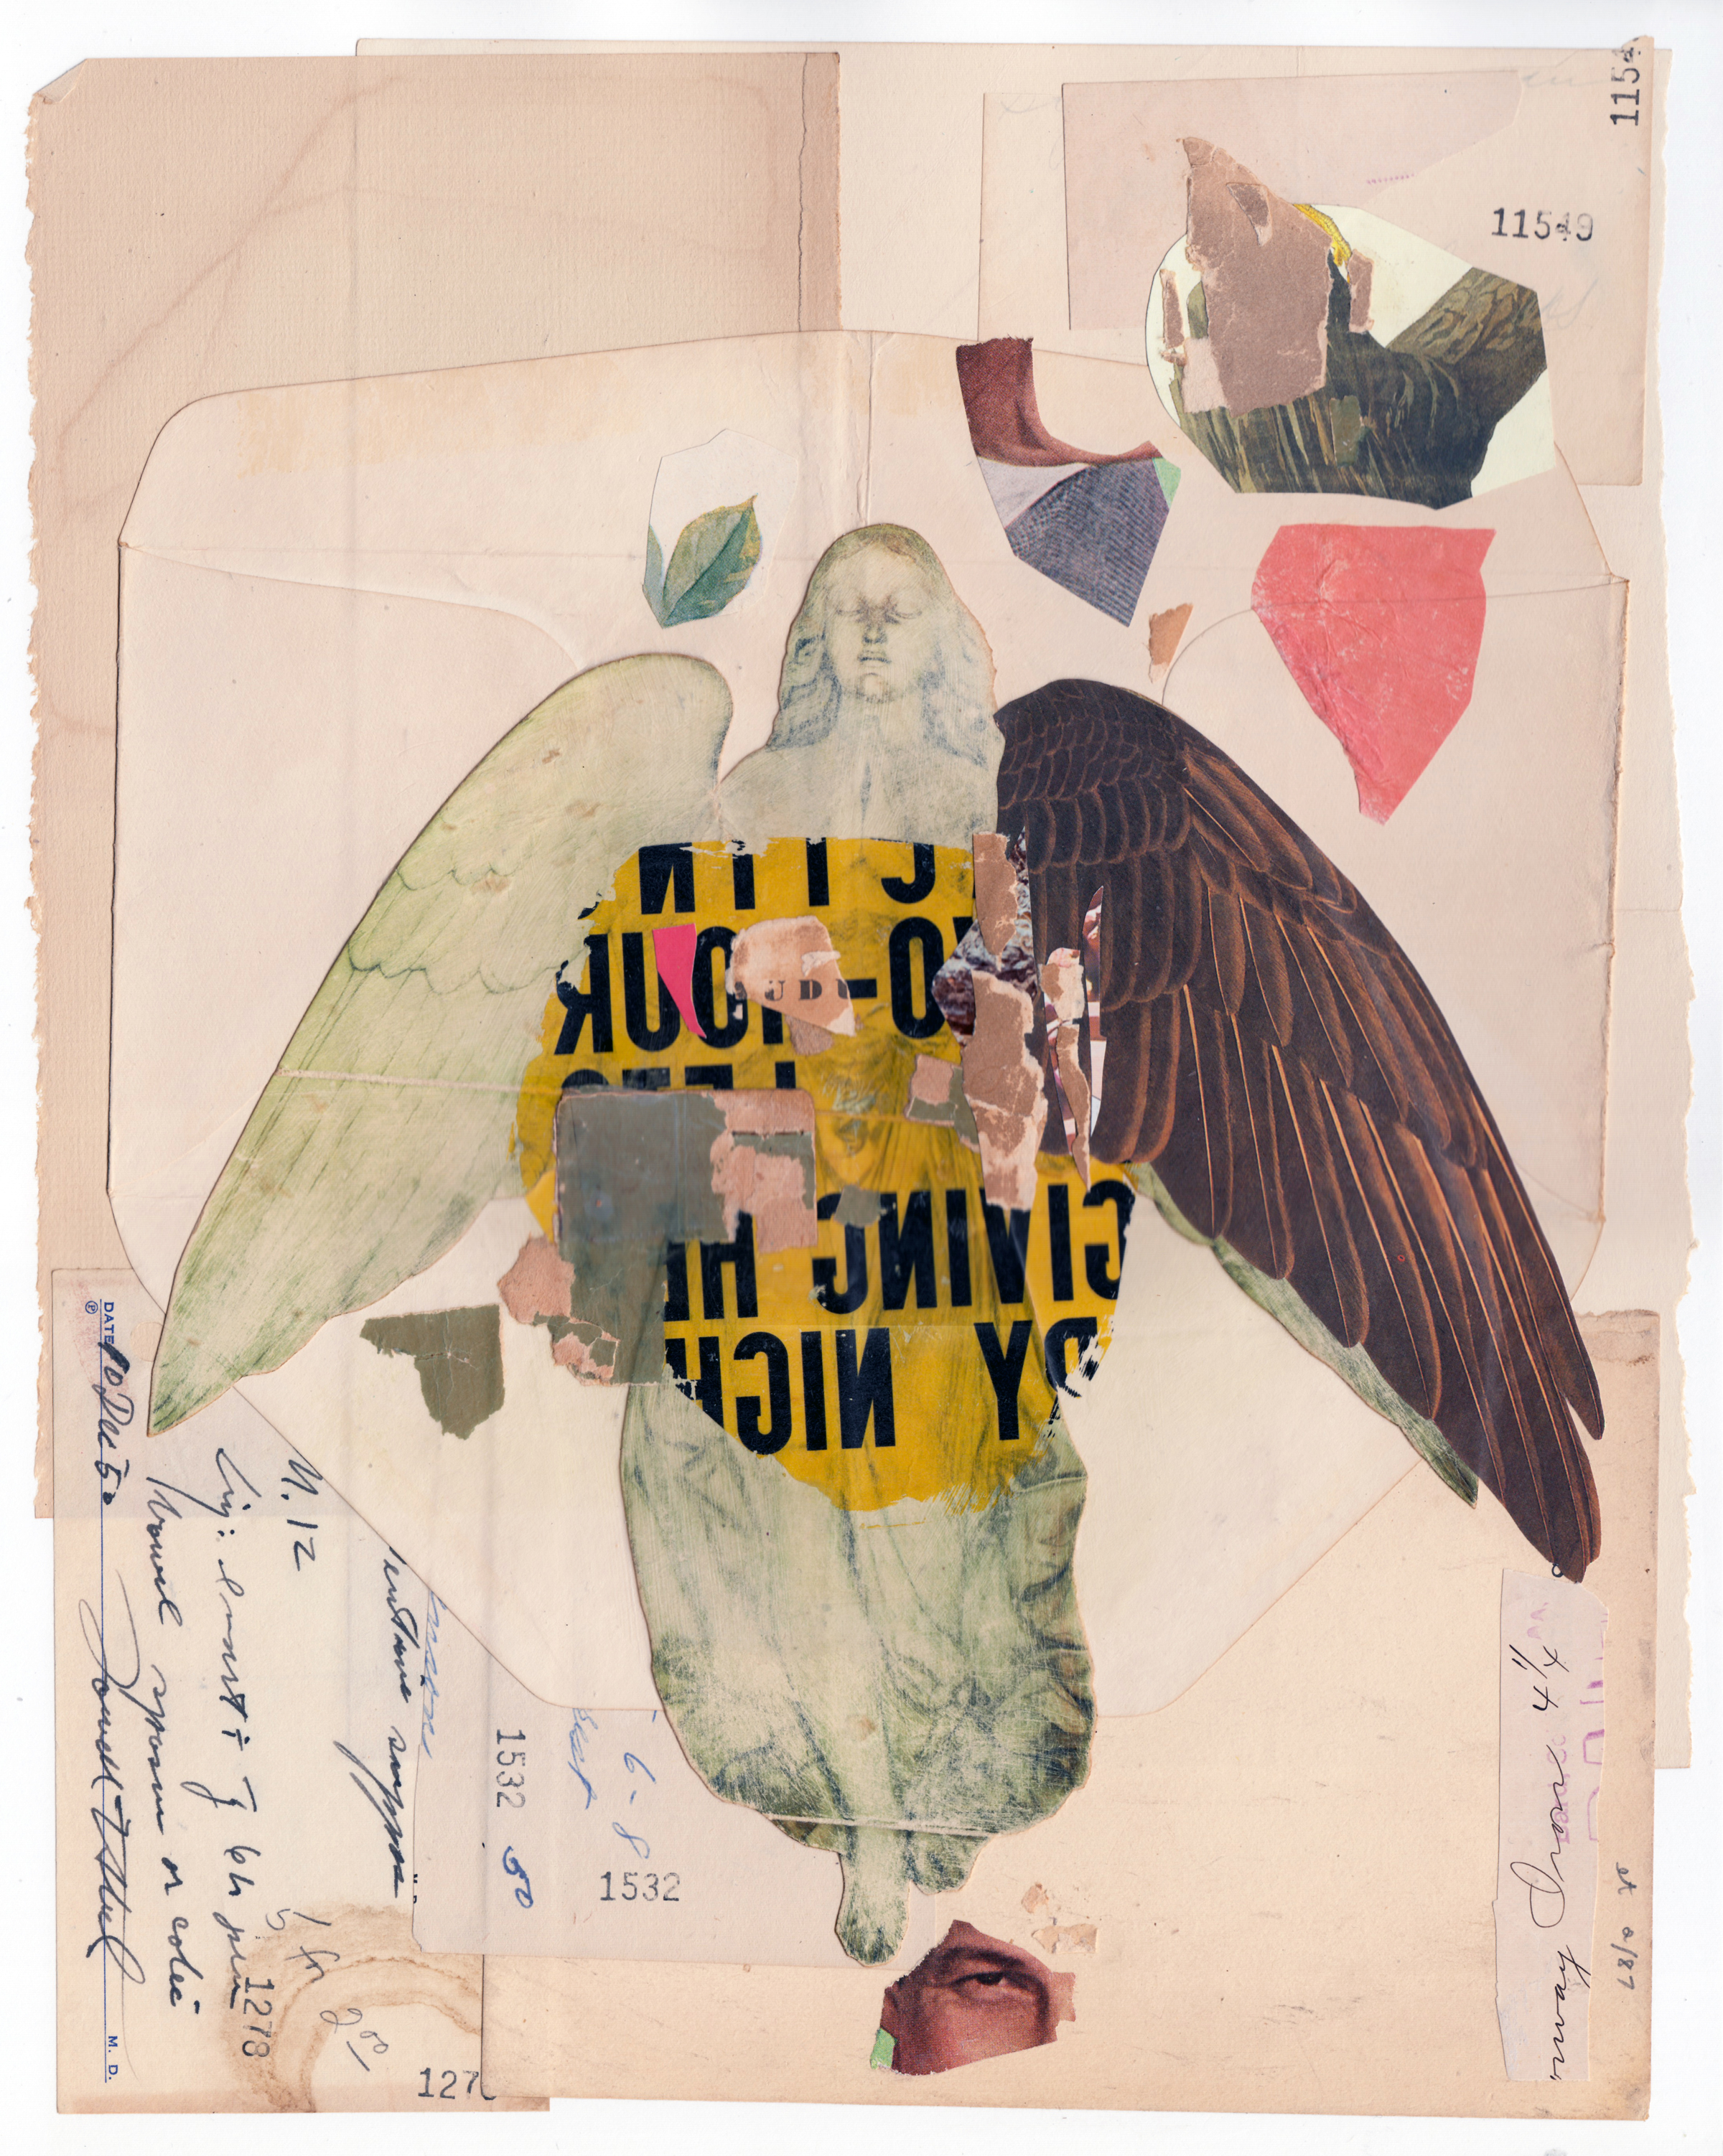 Collage Artists Doug Laurie Kanyer Art Collection